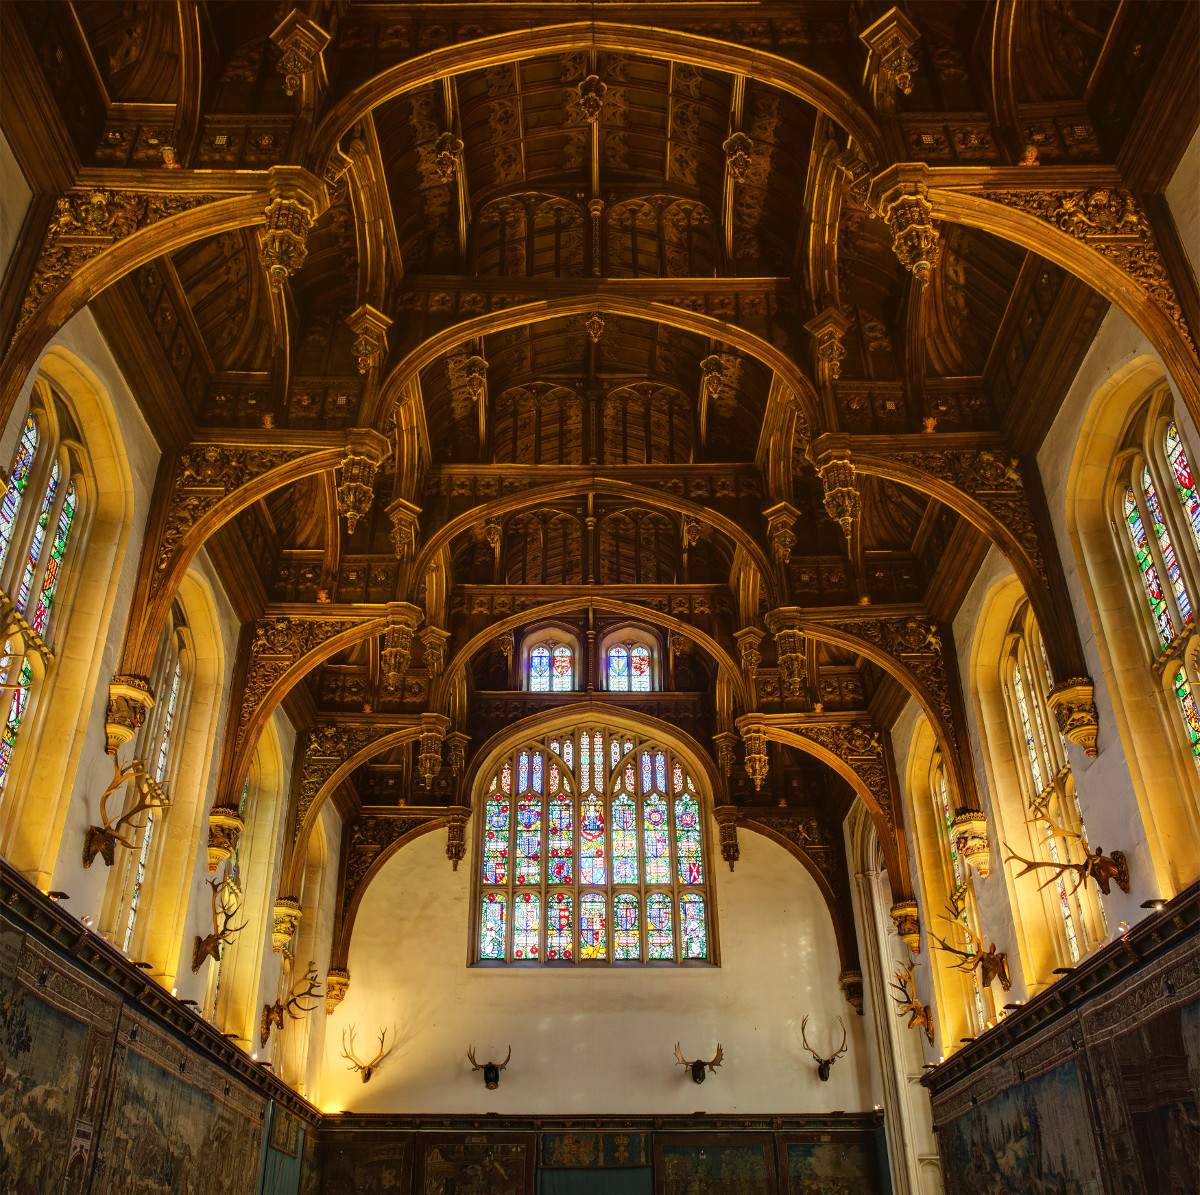 The ceiling of the Great Hall of Hampton Court Palace. Credit David Iliff